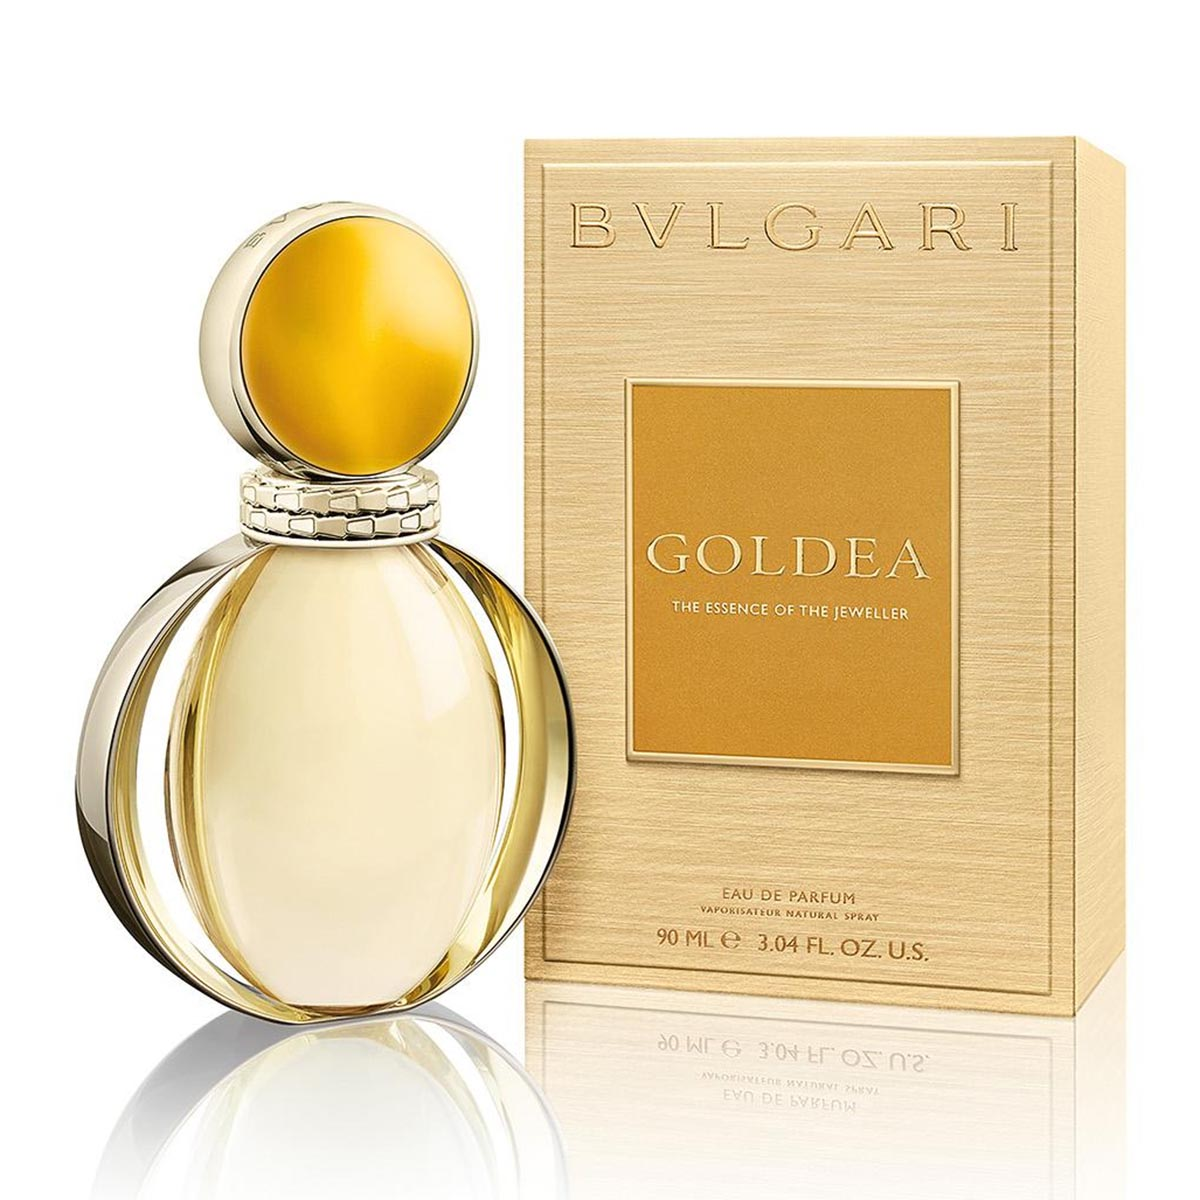 Bvlgari goldea for women eau de parfum 90ml vaporizador